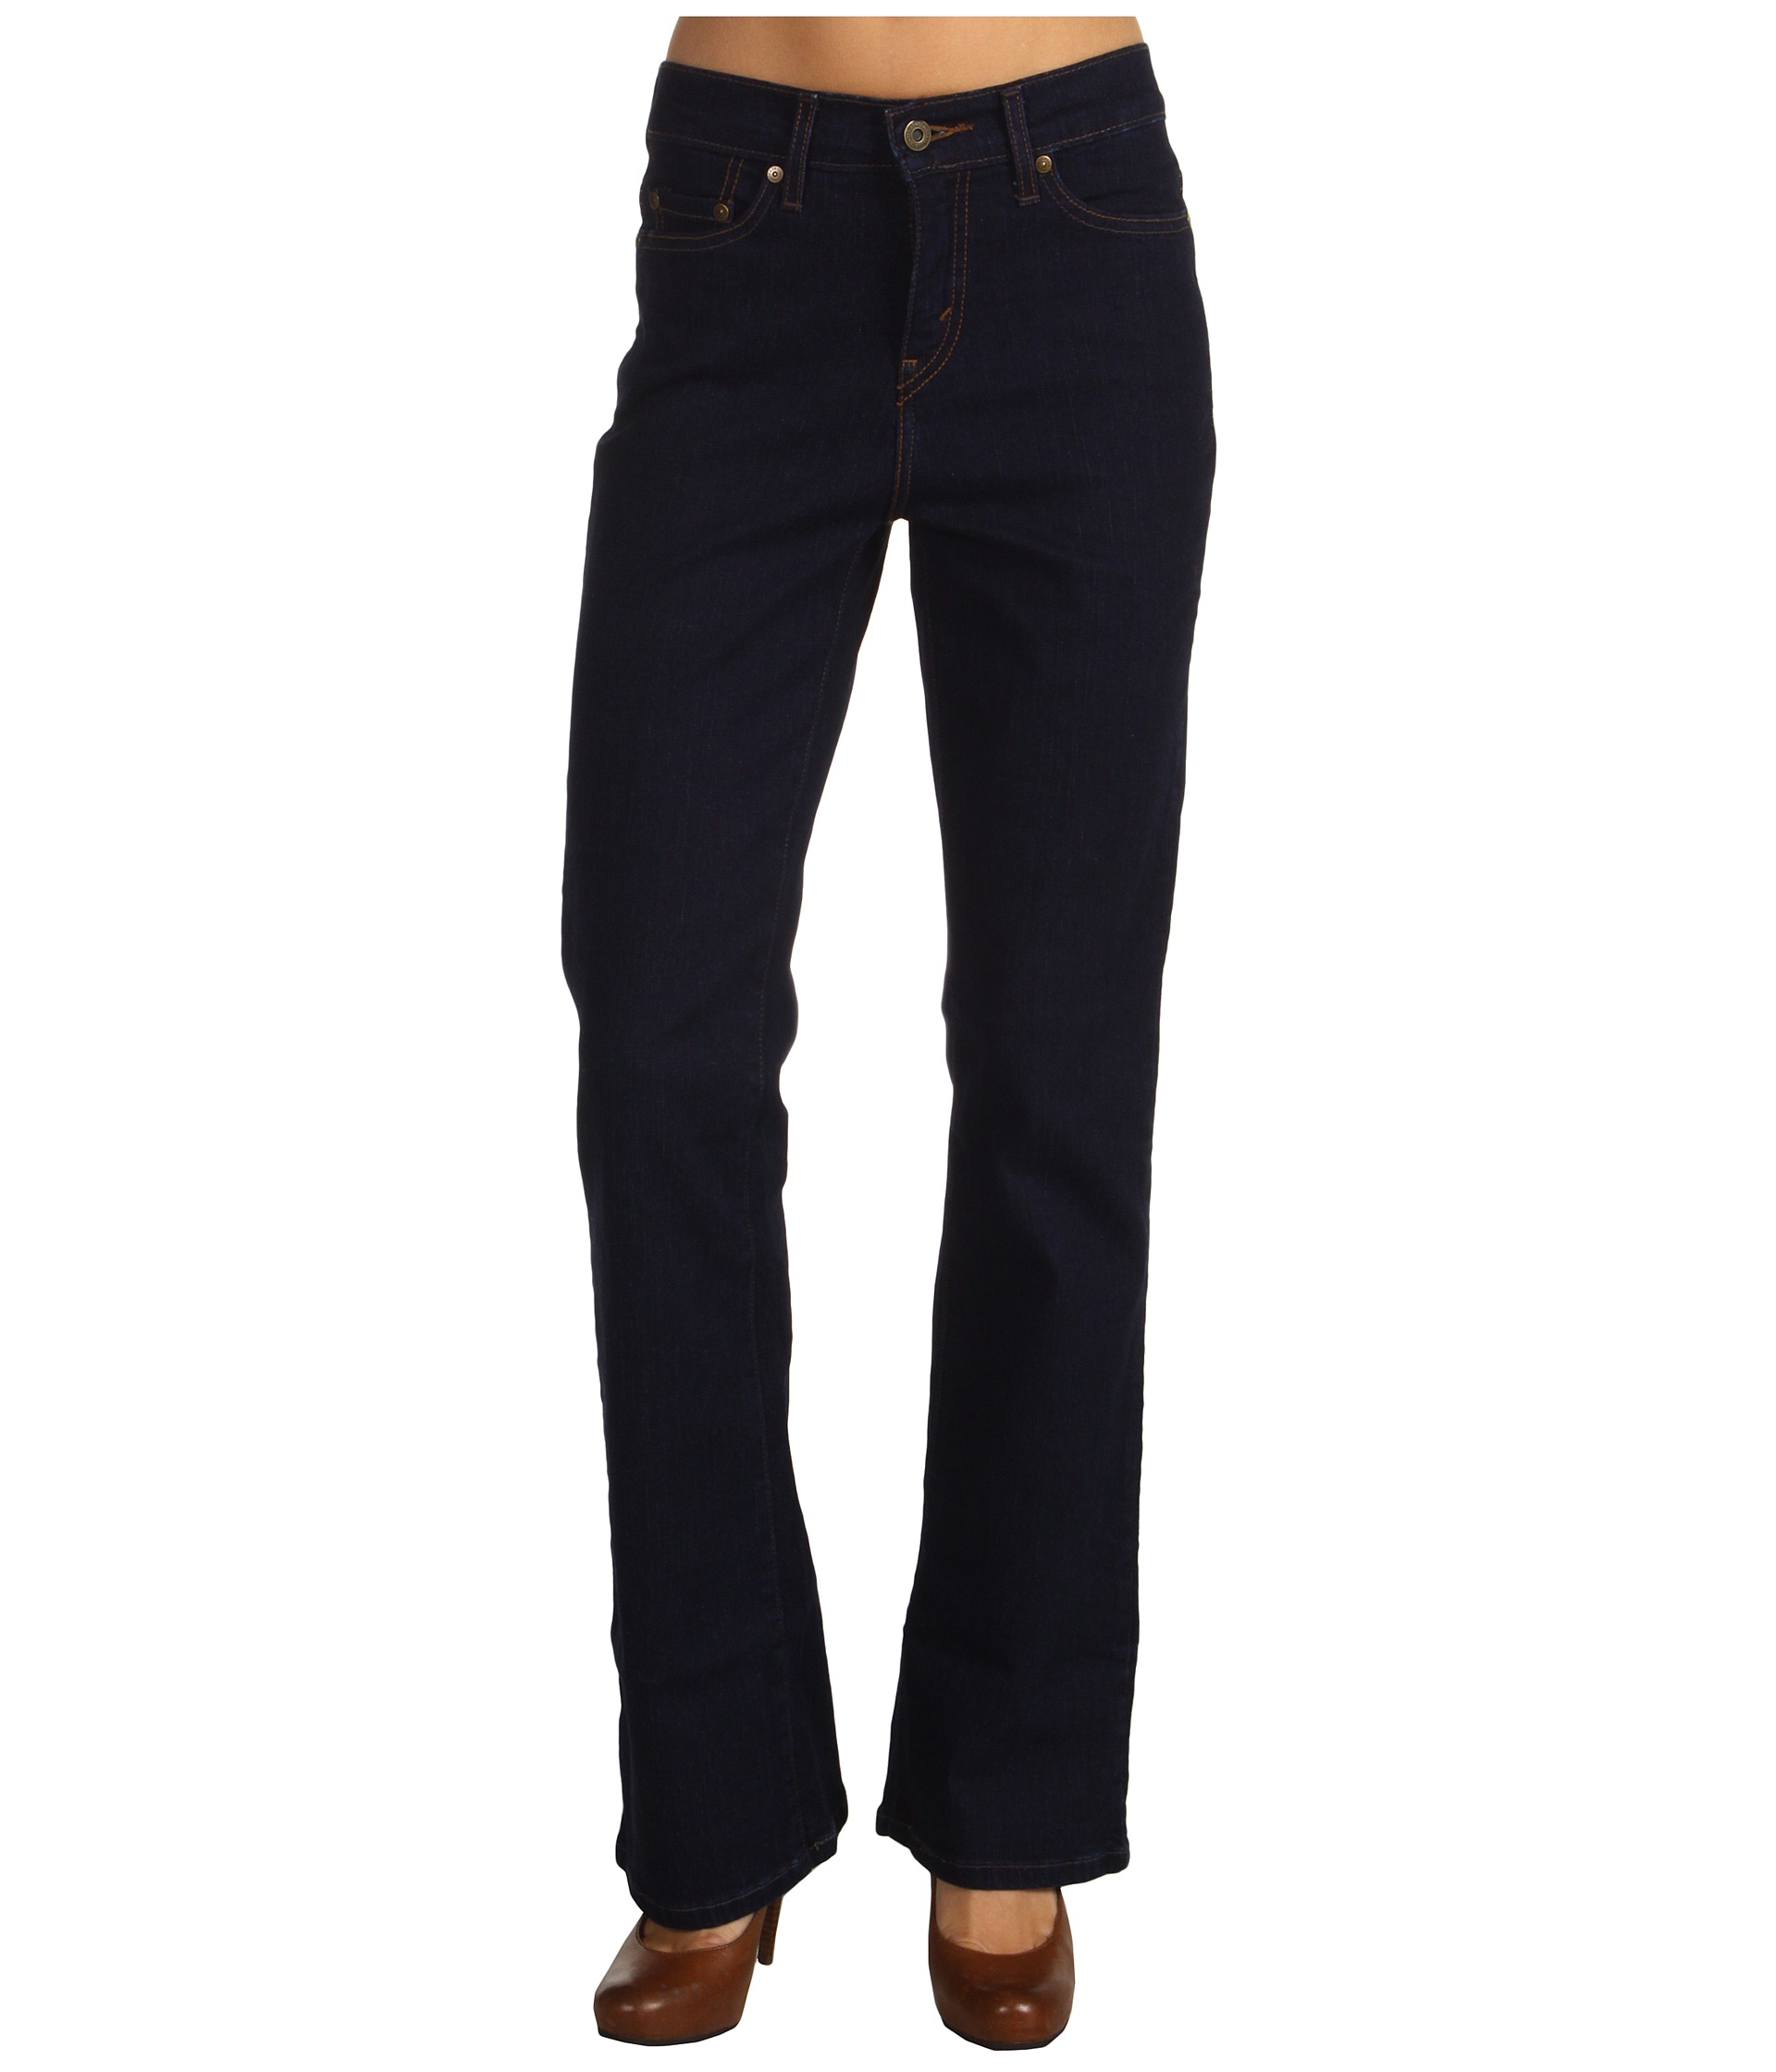 Buy low price, high quality womans slimming jeans with worldwide shipping on wilmergolding6jn1.gq